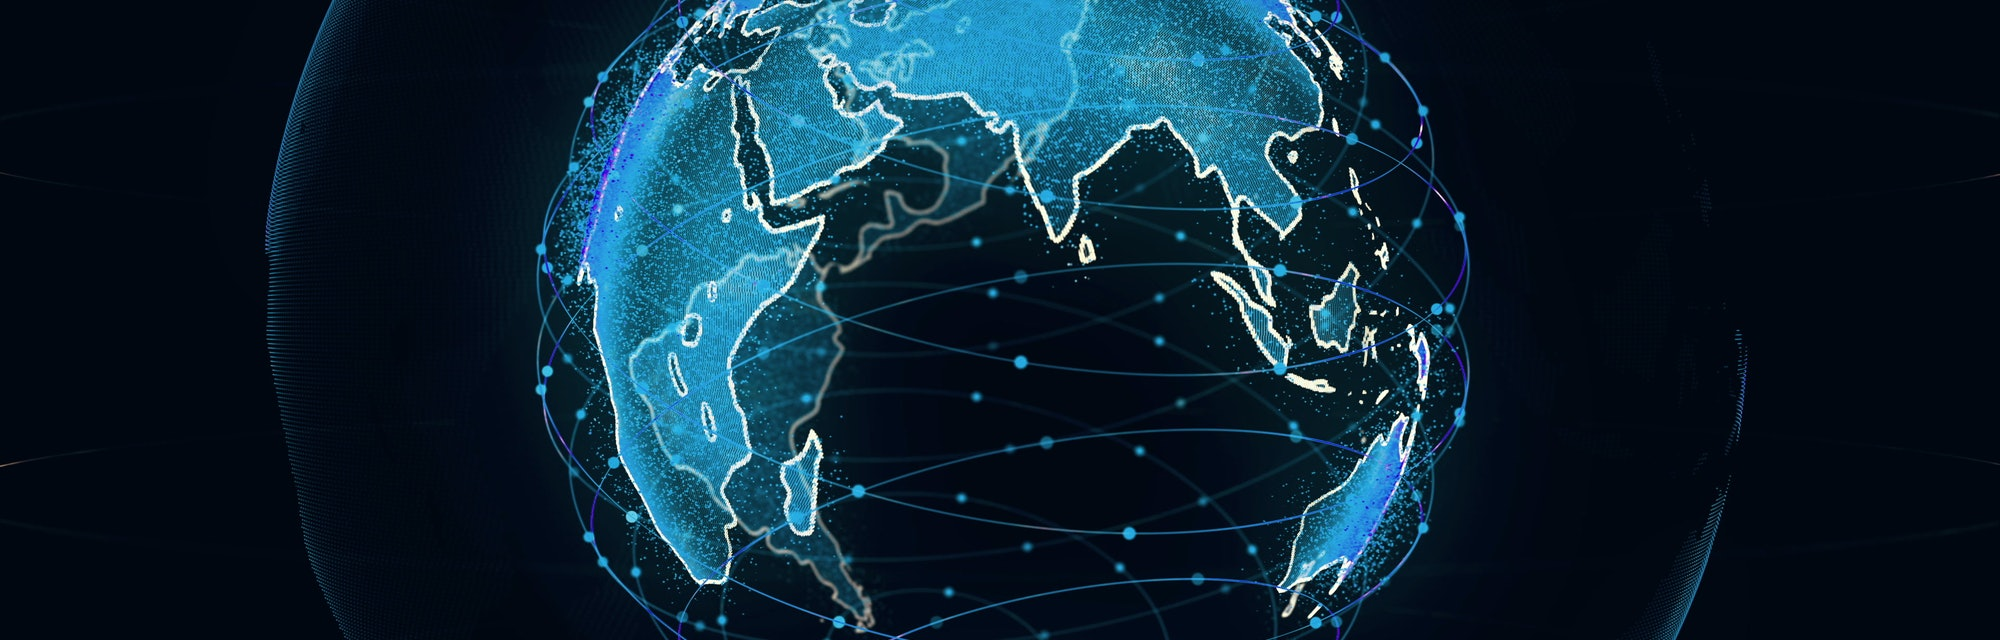 Global network connection the world abstract 3D rendering satellites starlink. satellites create oneweb or skybridge surrounding planet conveying complexity big data flood the modern digital